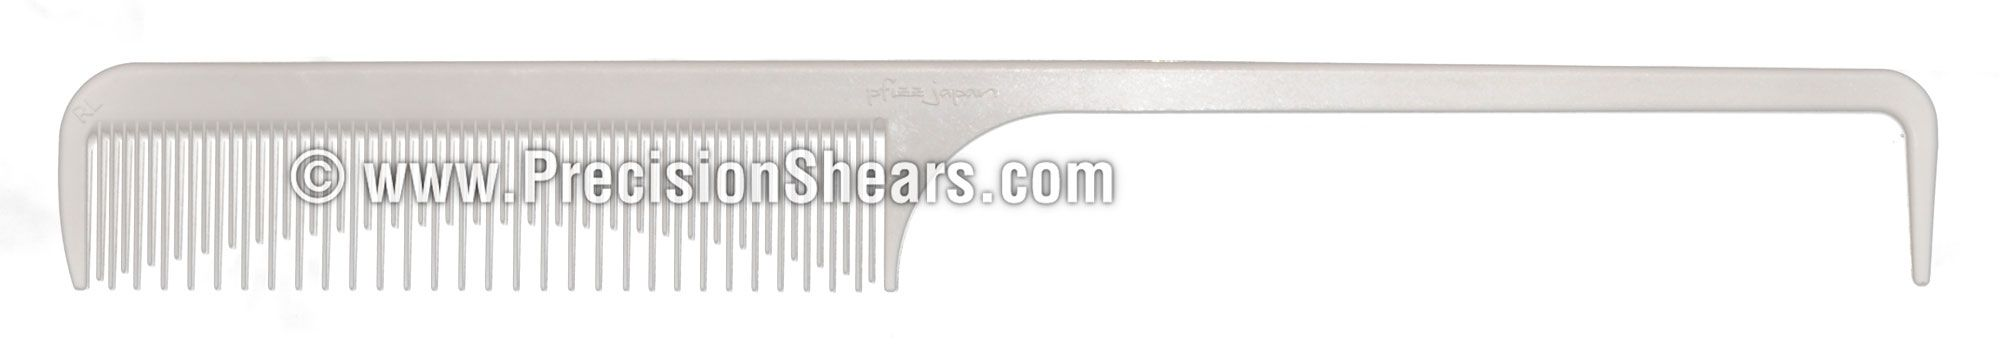 PFIZZ Tail L Comb White